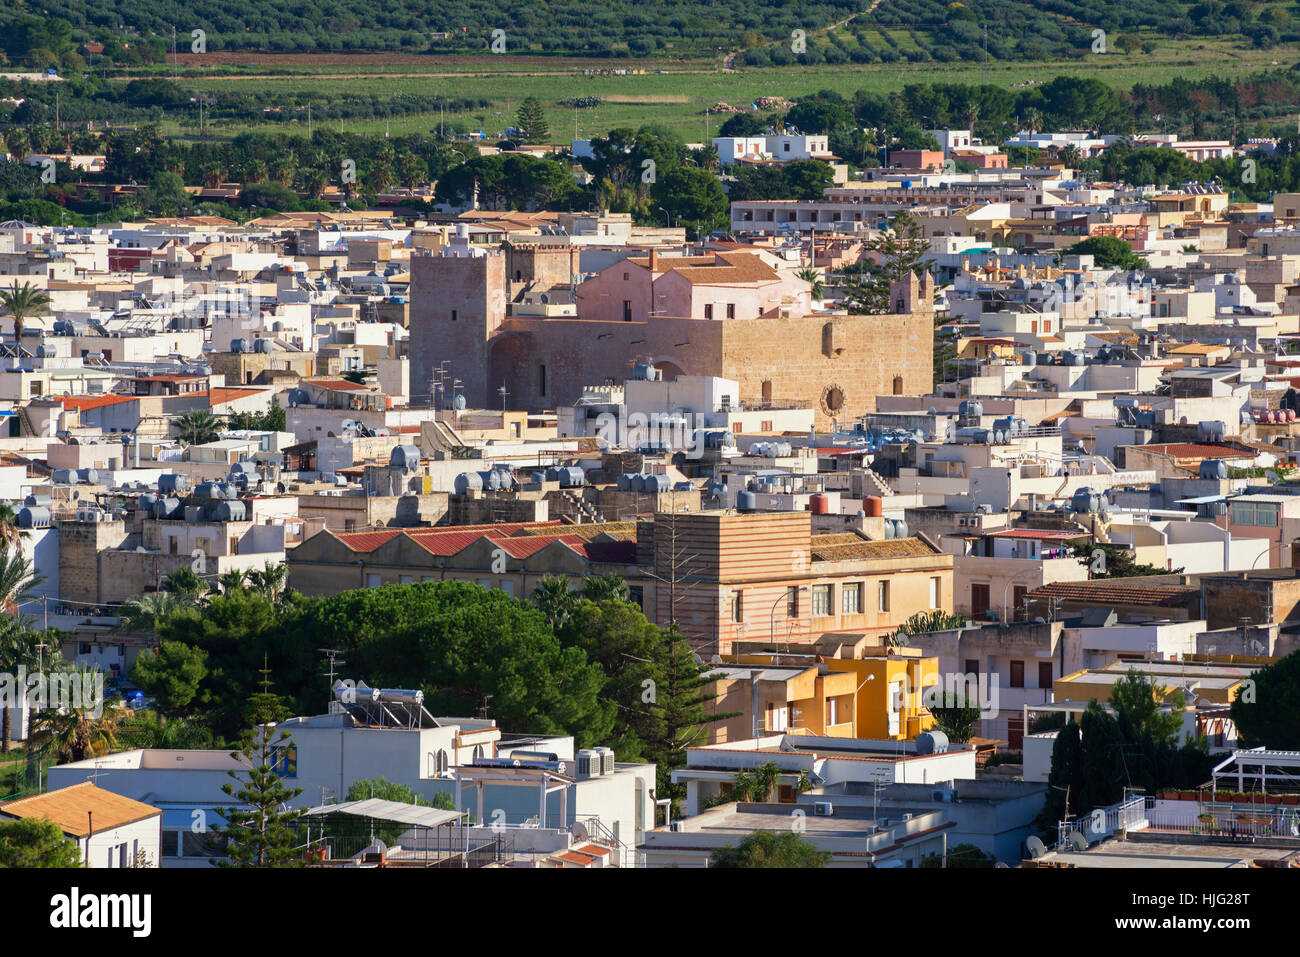 View of San Vito Lo Capo, Sicily, Italy Stock Photo